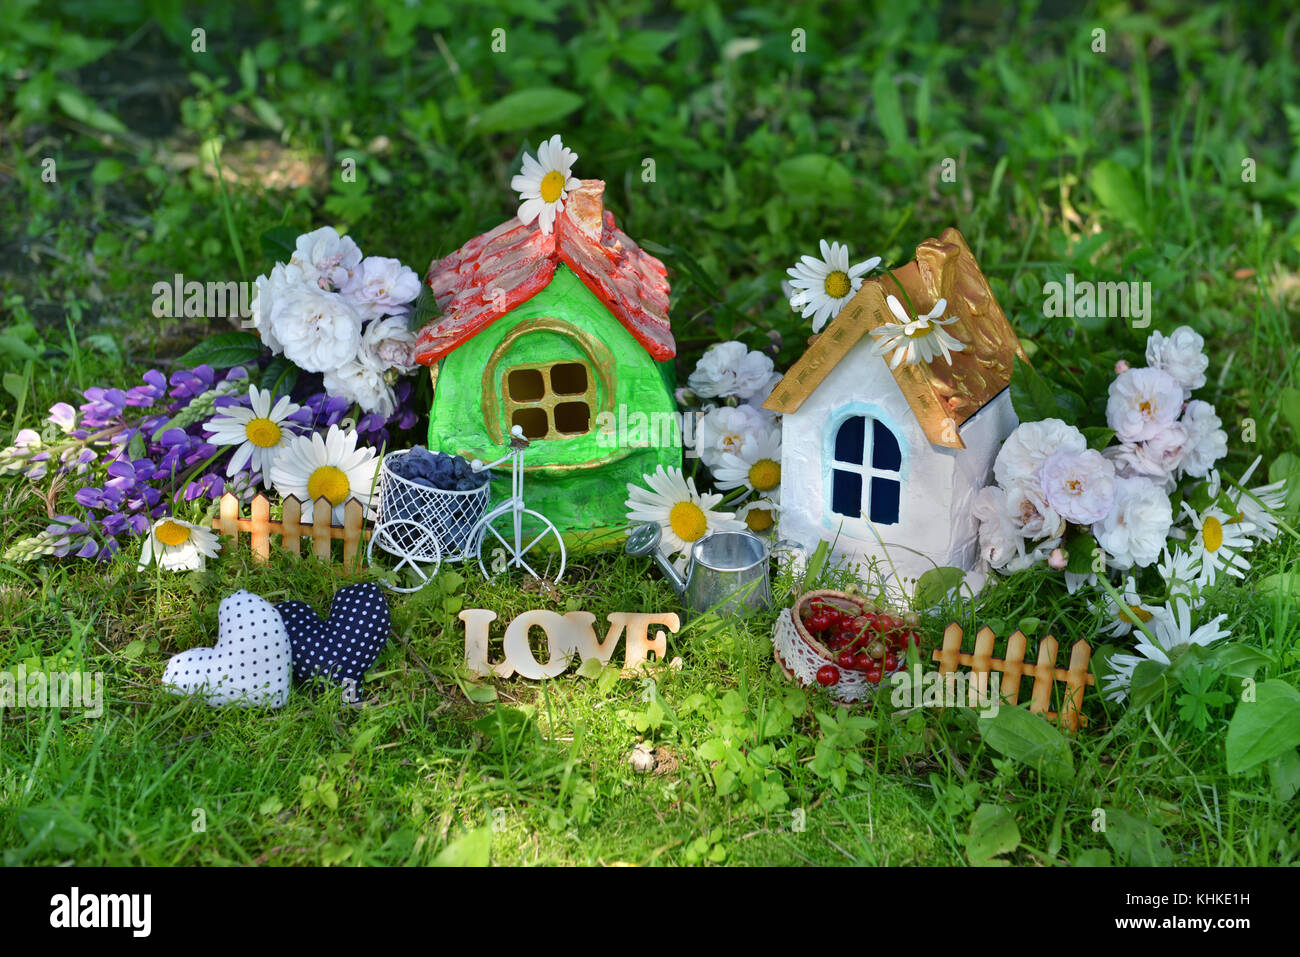 Two small toy houses with cute decorations, love letters, flowers, tiny fence and berries - Stock Image